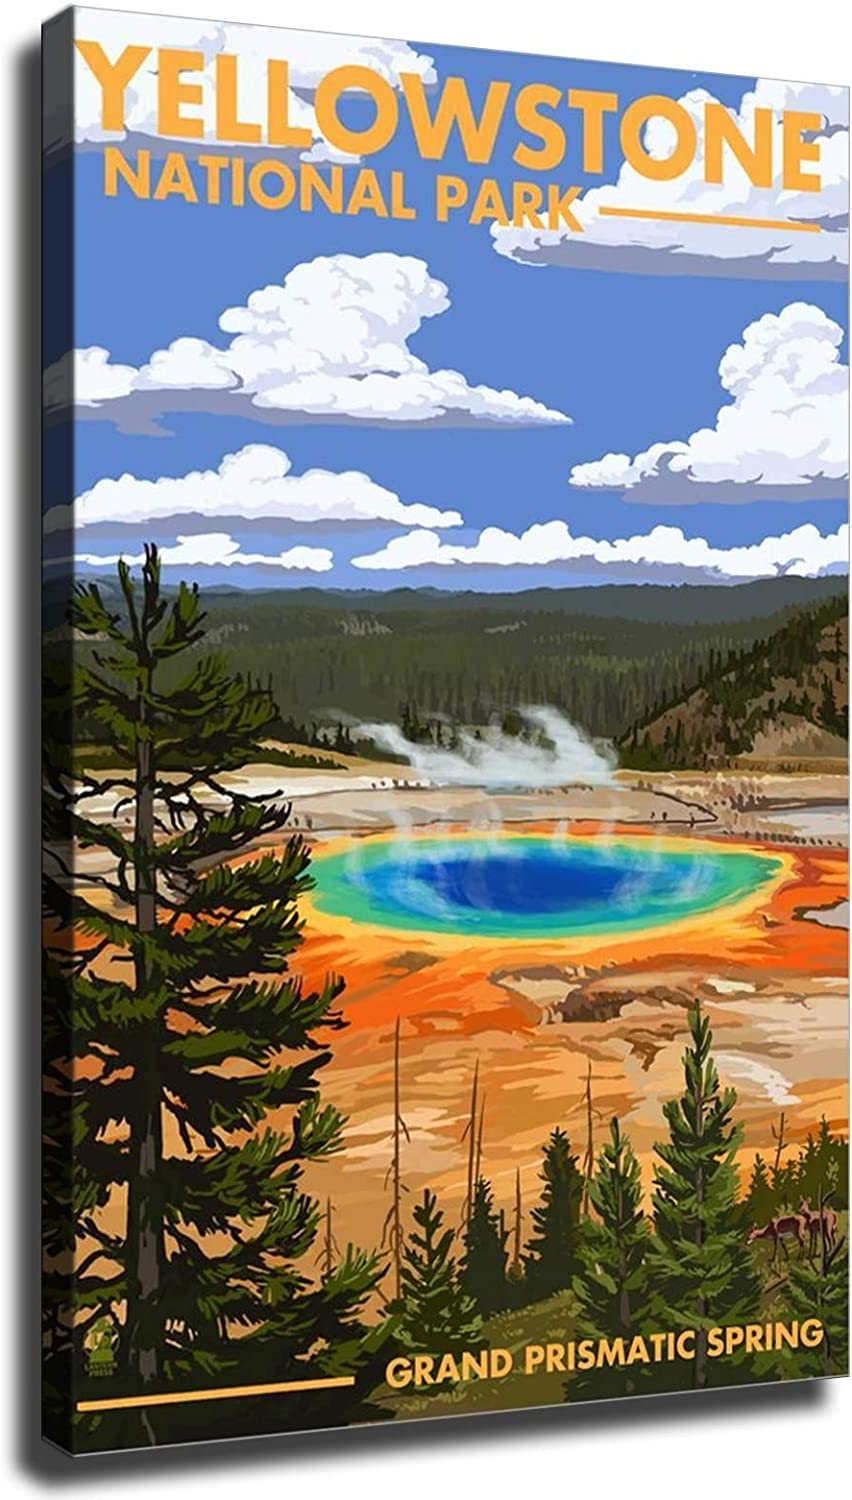 GREAT Modern Wall Poster Art Print Oil Painting on Canvas Home Decor Wall Decoration Canvas Art Yellowstone National Park, Grand Prismatic Spring Art Print Poster (Unframed-No Framed,12×18inch)